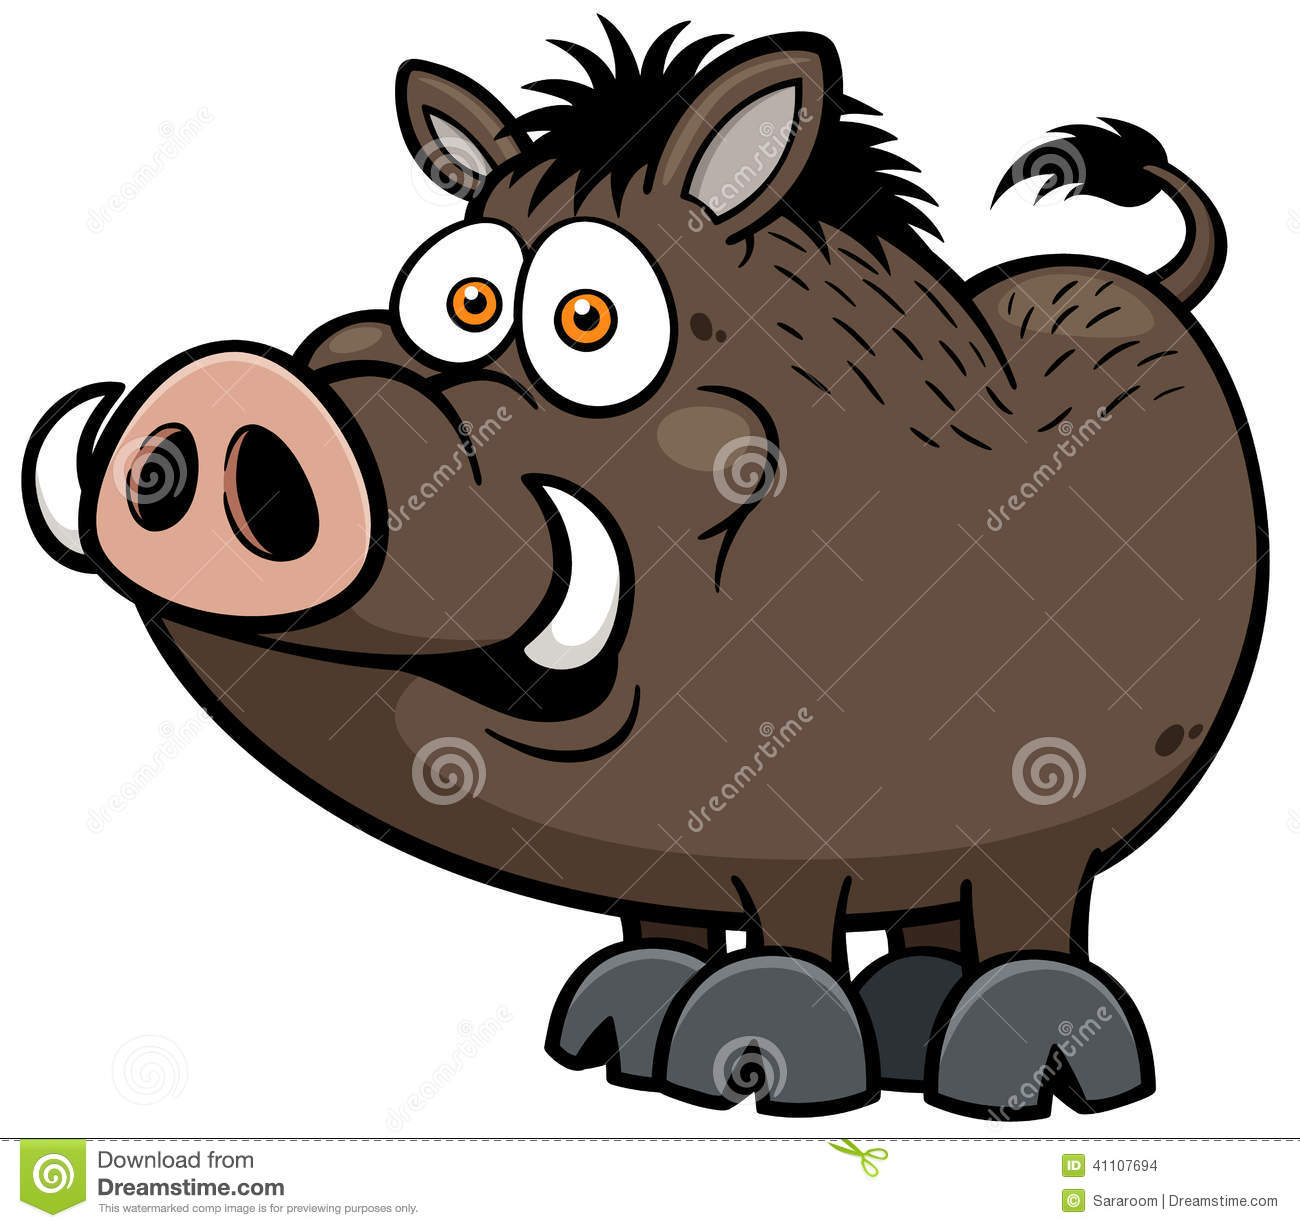 Warthog clipart #8, Download drawings